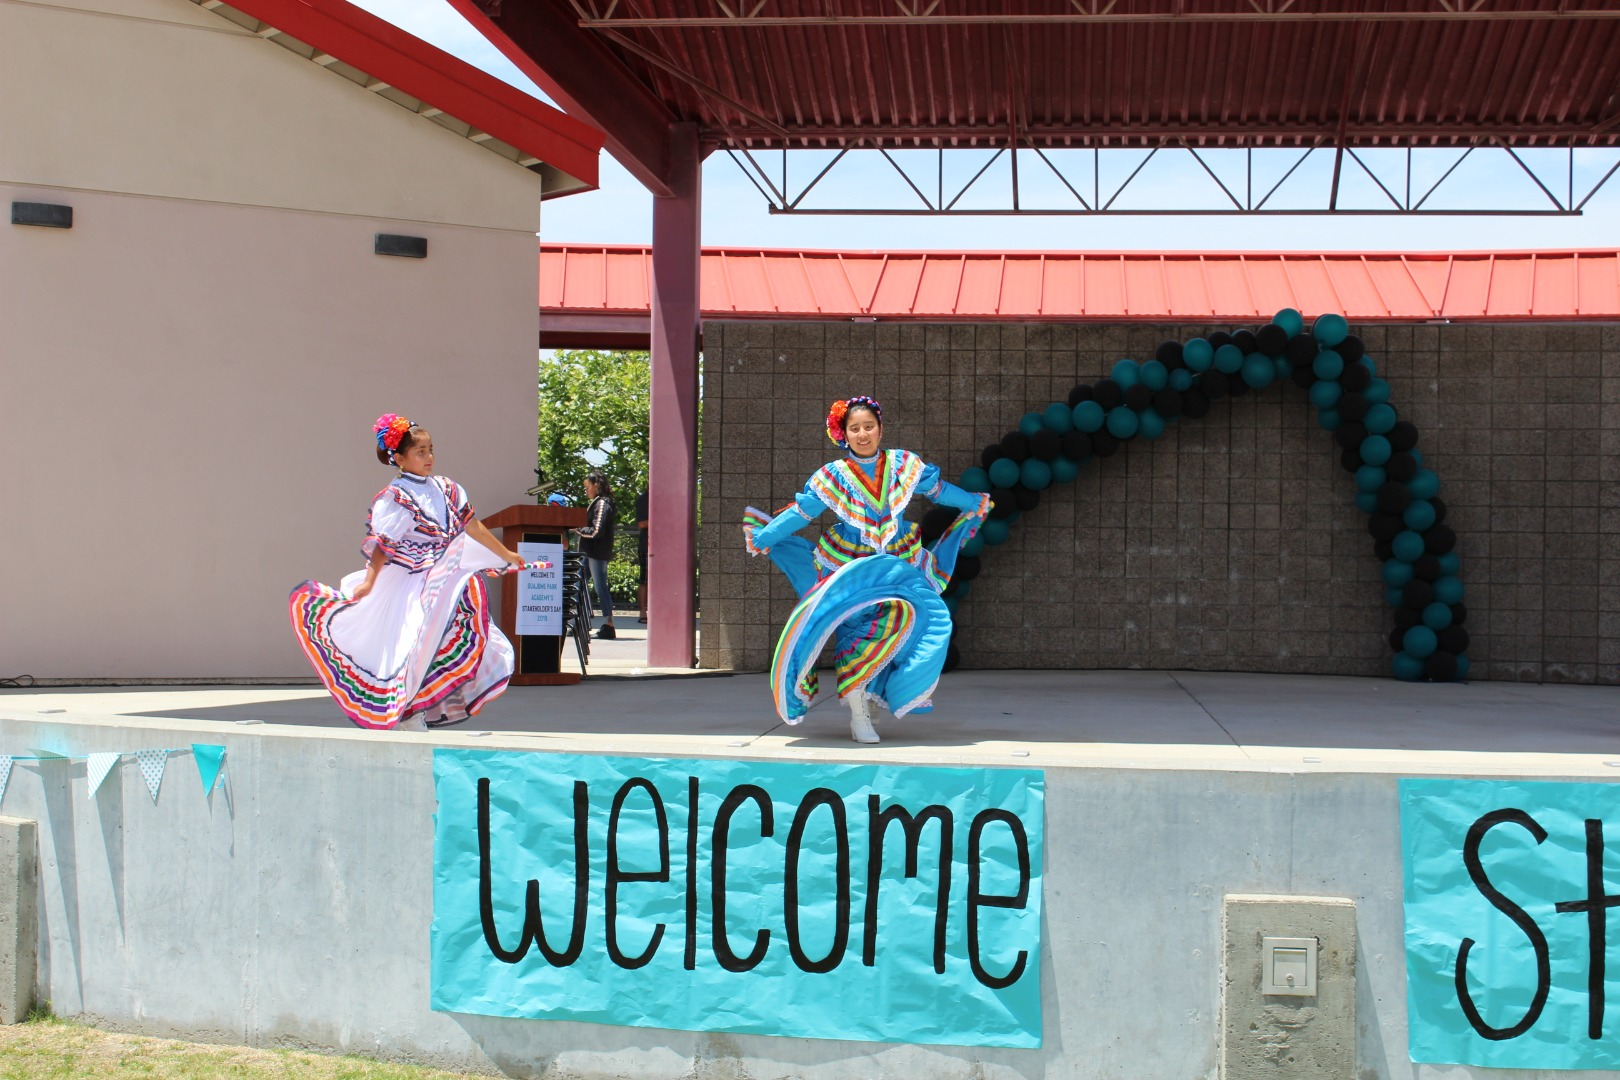 ballet folklórico students dancing on stage in dresses